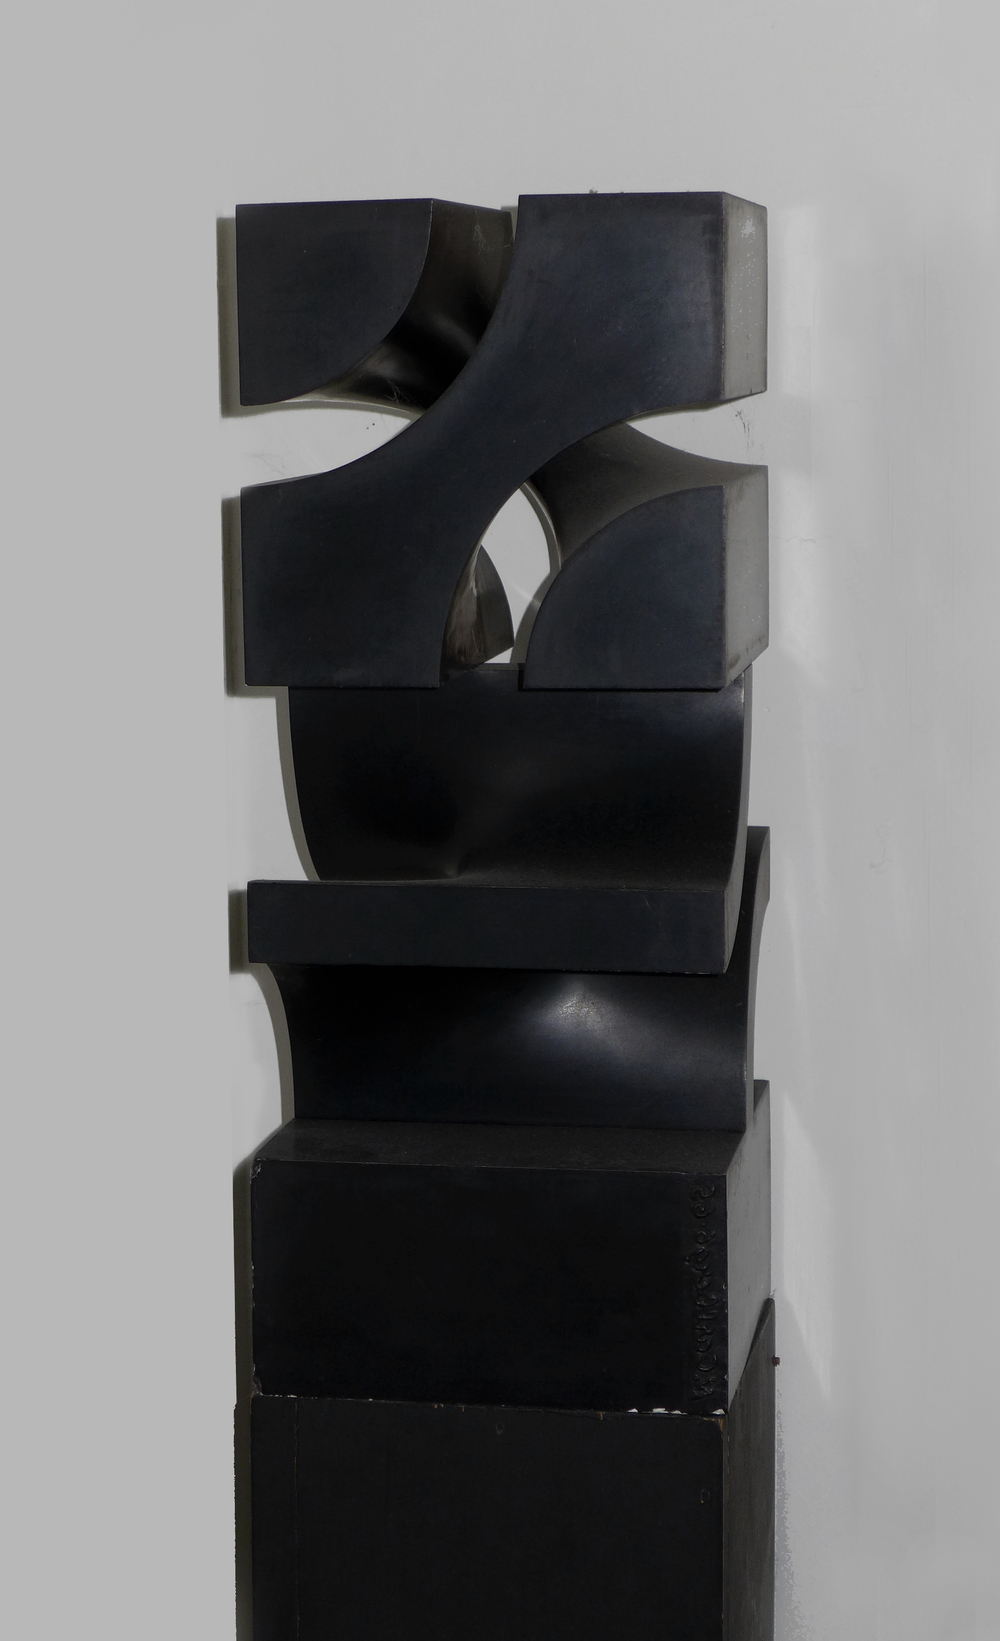 Norman Carlberg, Untitled, 1960, cast metal, 24x10x10